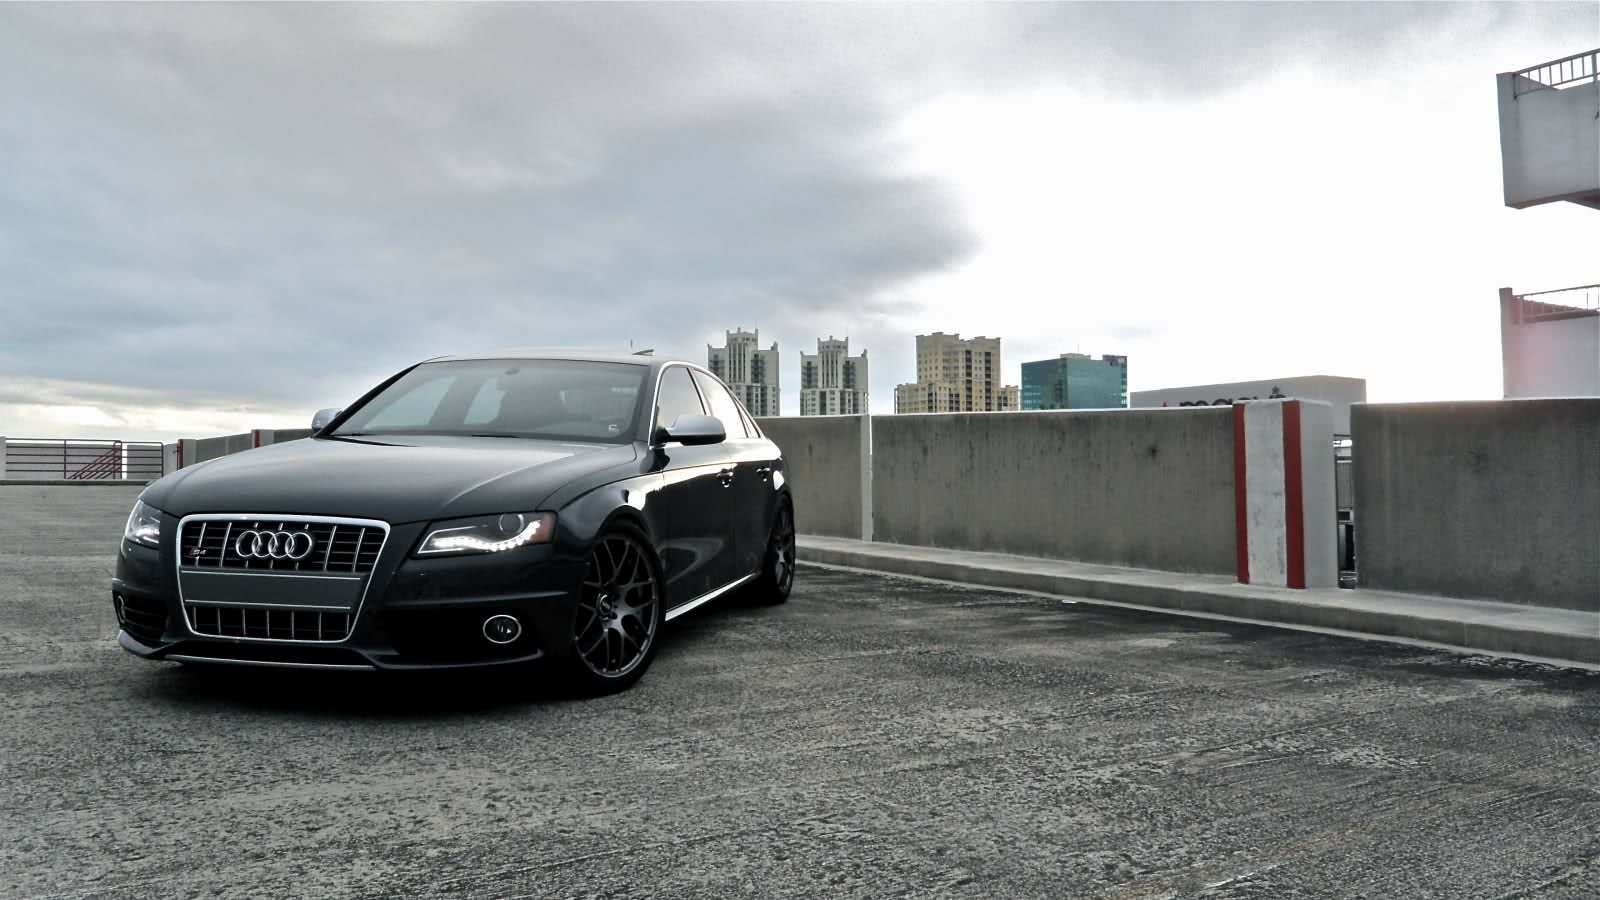 Audi A4 Wallpaper For Android Android Wallpaper